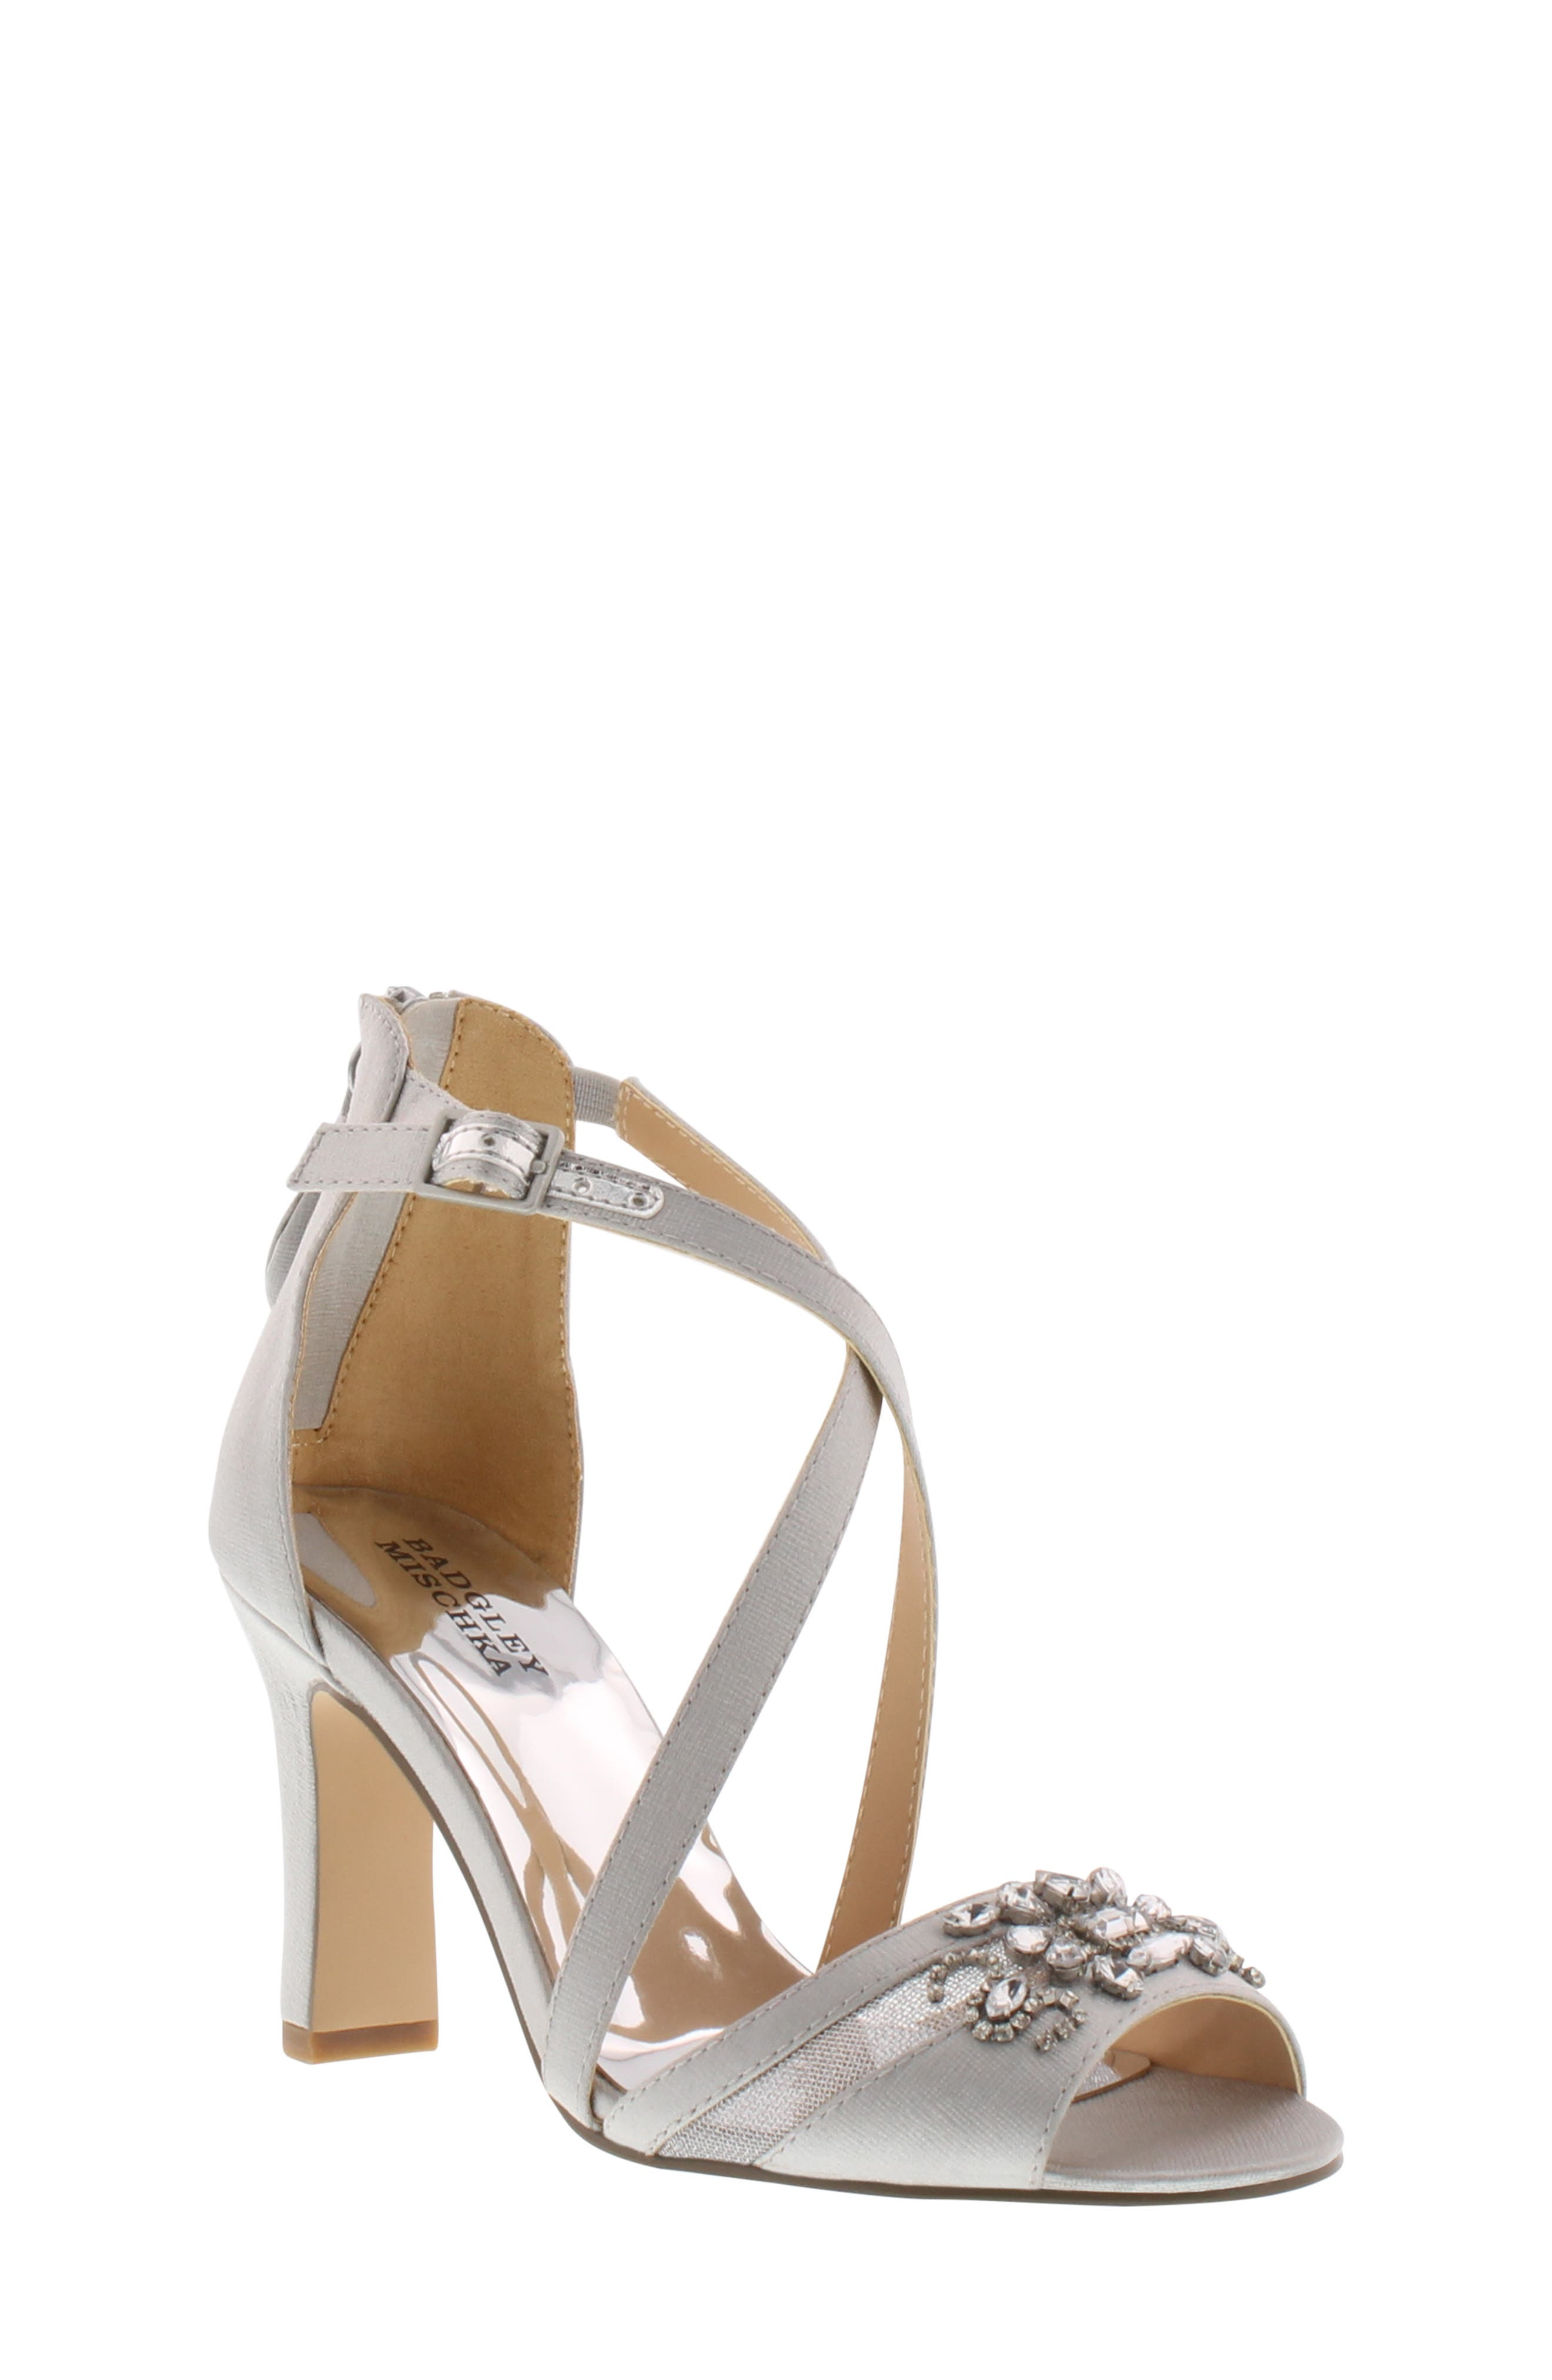 Clusters of crystals add pretty sparkle to the shine of a black-satin sandal styled with slender straps crossing gracefully up the front and a half-moon heel adding lift. Style Name: Badgley Mischka Kandall Hannah Embellished Cross Strap Sandal (Little Kid & Big Kid). Style Number: 5425042. Available in stores.